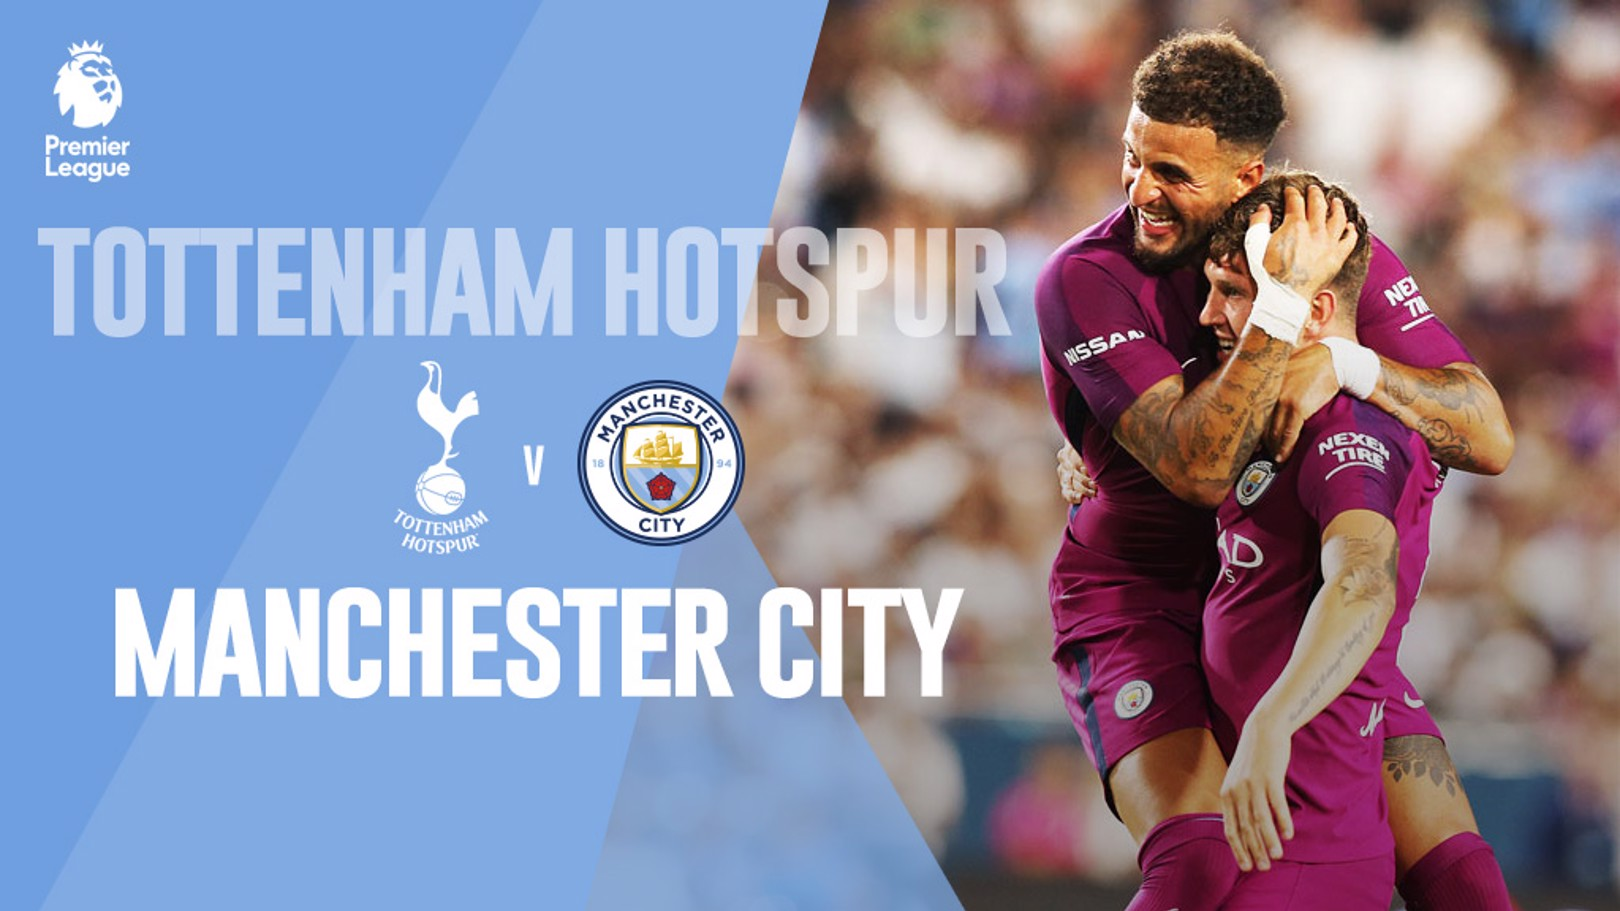 Tottenham x Man City